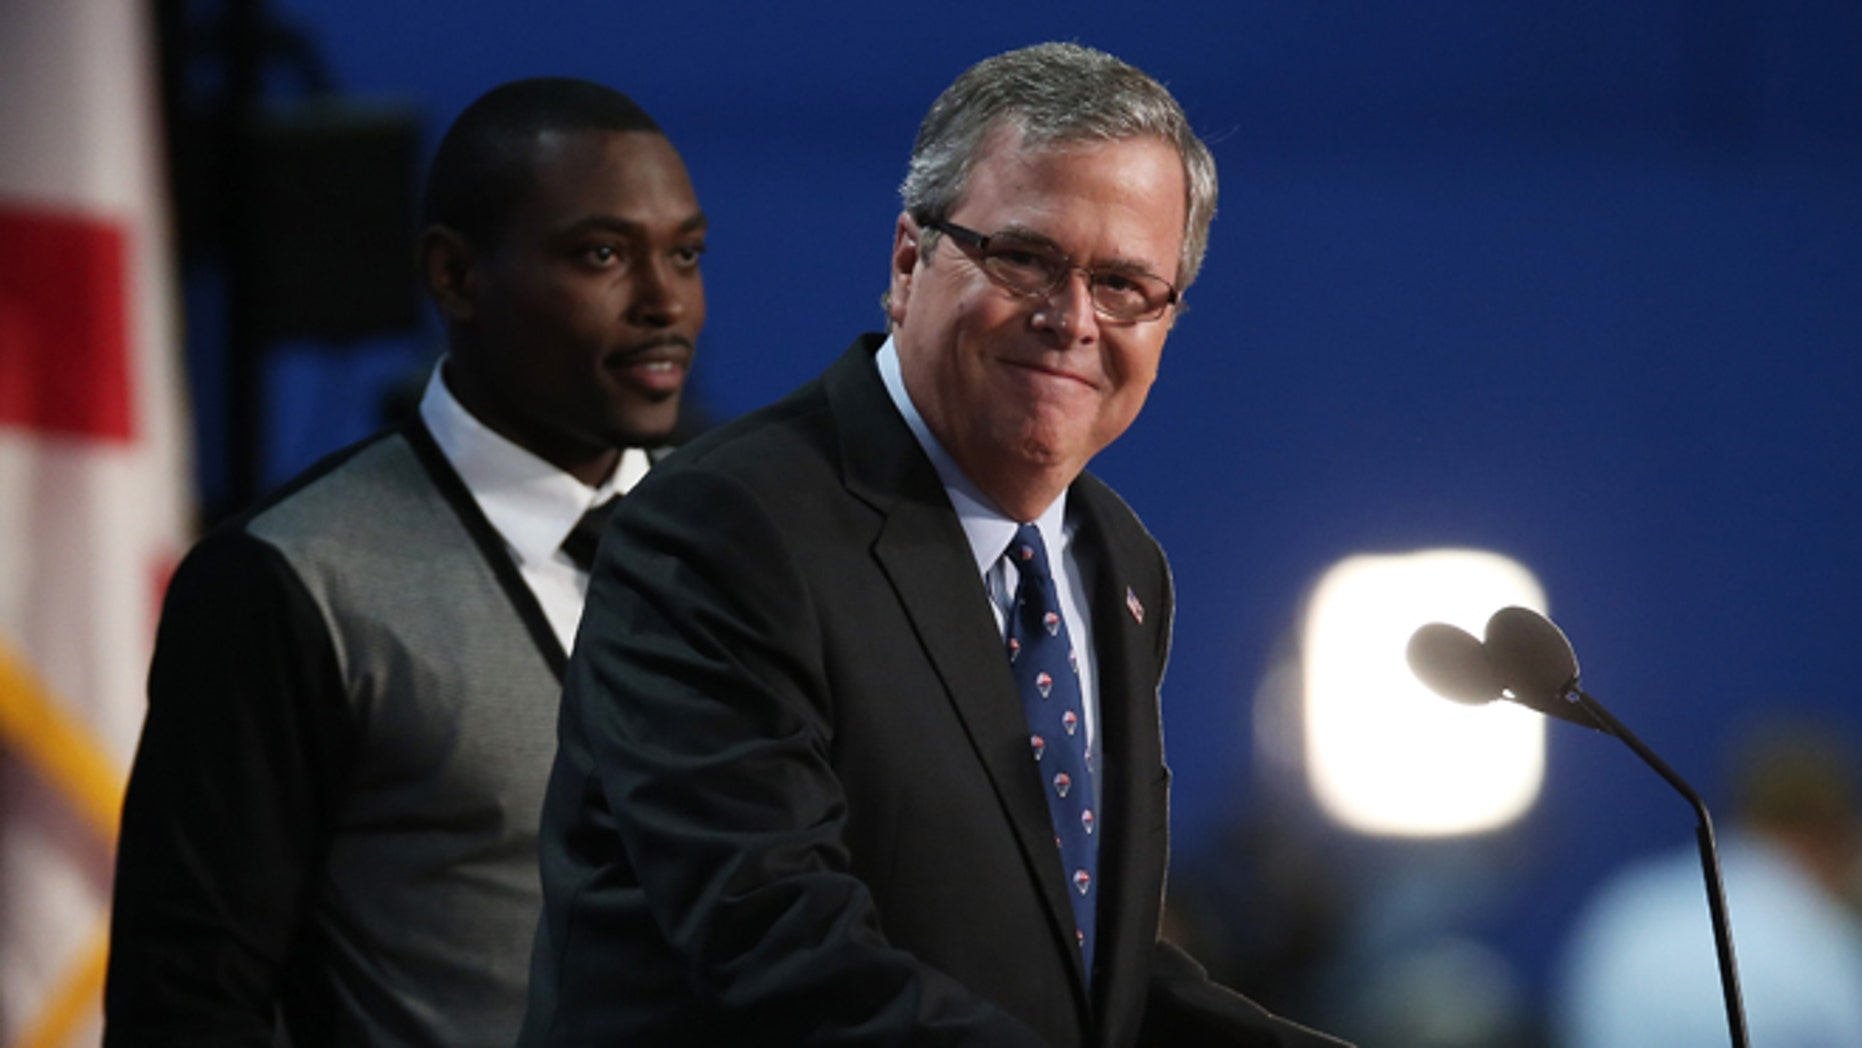 TAMPA, FL - AUGUST 30:  Former Florida Gov. Jeb Bush speaks on stage with student Frantz Placide (L) of Miami, FL during the final day of the Republican National Convention at the Tampa Bay Times Forum on August 30, 2012 in Tampa, Florida. Former Massachusetts Gov. Mitt Romney was nominated as the Republican presidential candidate during the RNC which will conclude today.  (Photo by Win McNamee/Getty Images)